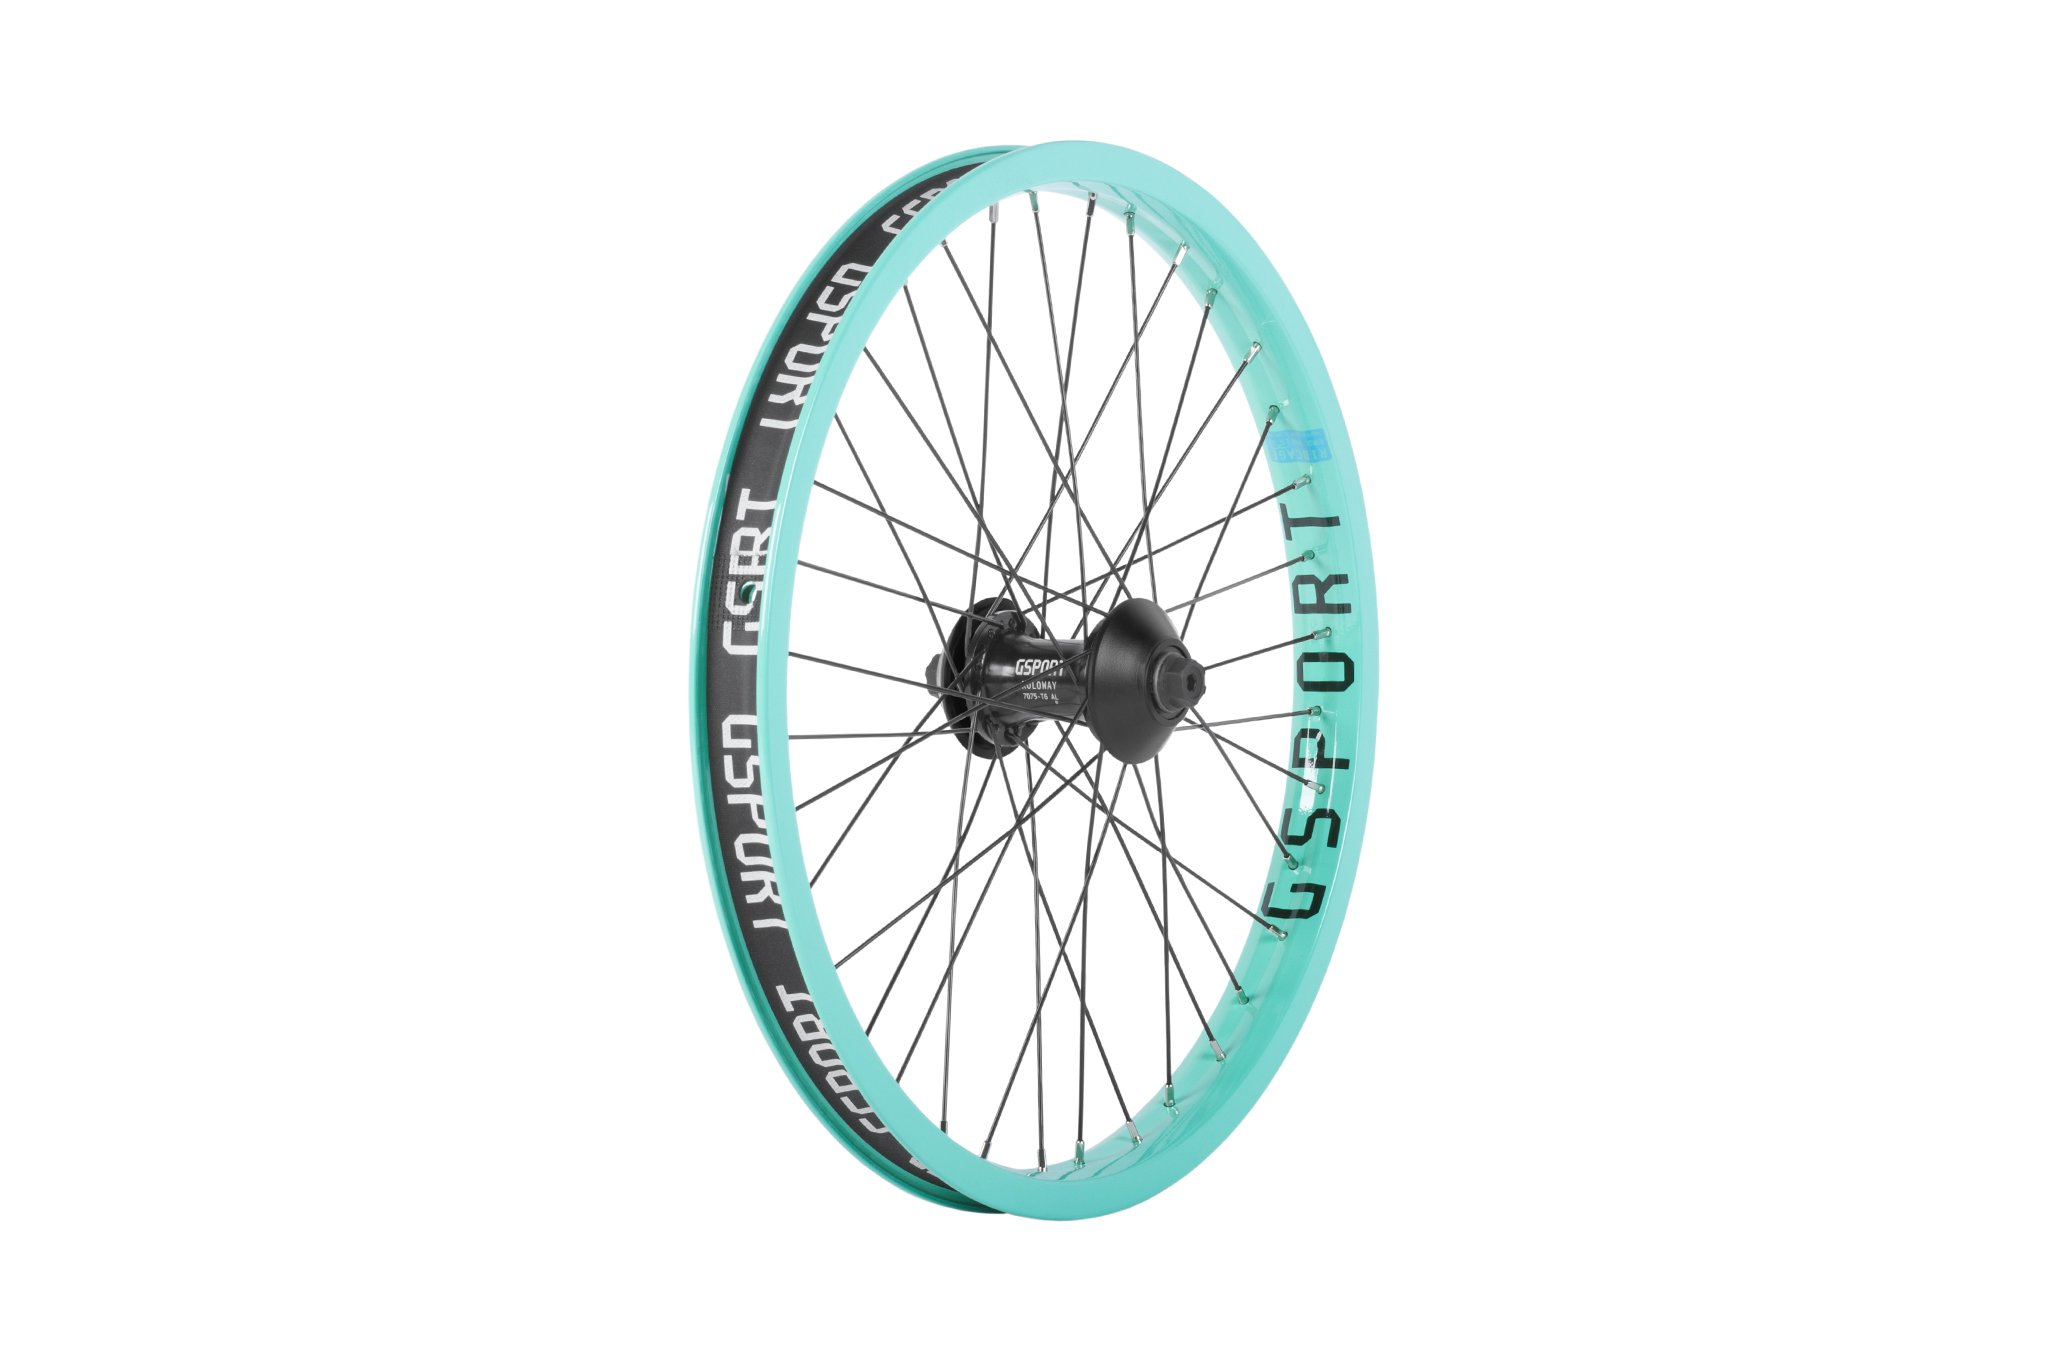 Gsport Toothpaste Ribcage Rims And Elite Wheels